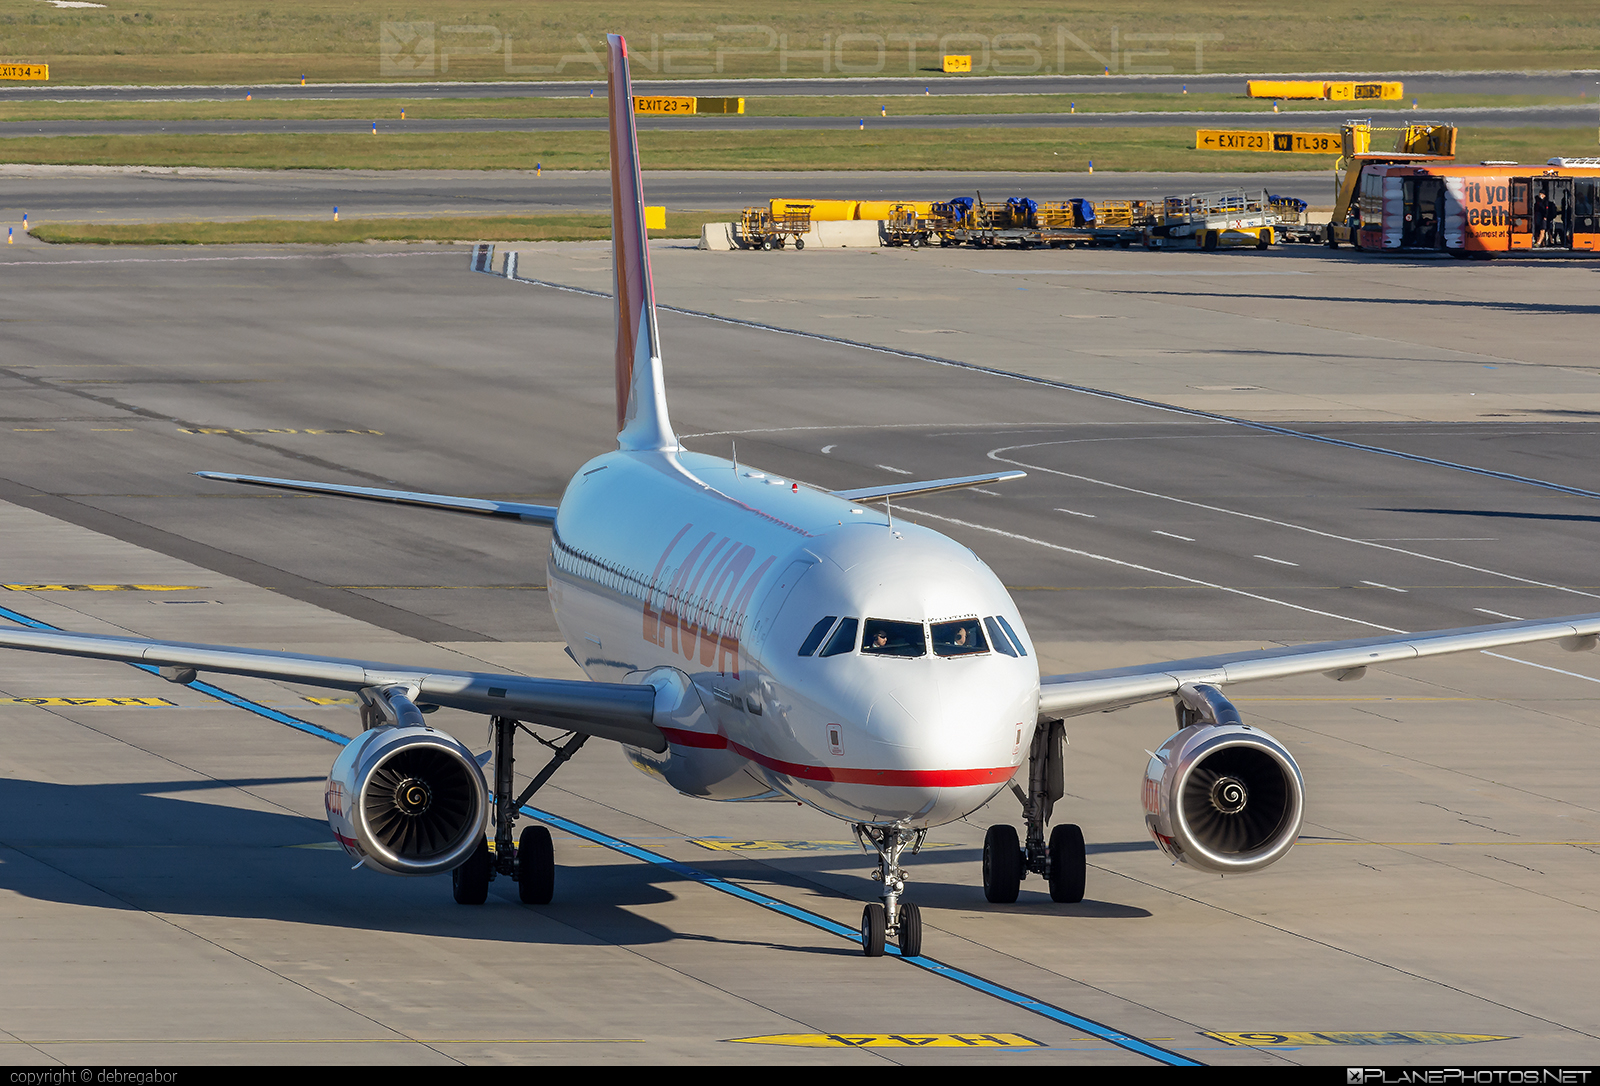 Airbus A320-232 - OE-IHH operated by LaudaMotion #a320 #a320family #airbus #airbus320 #laudamotion